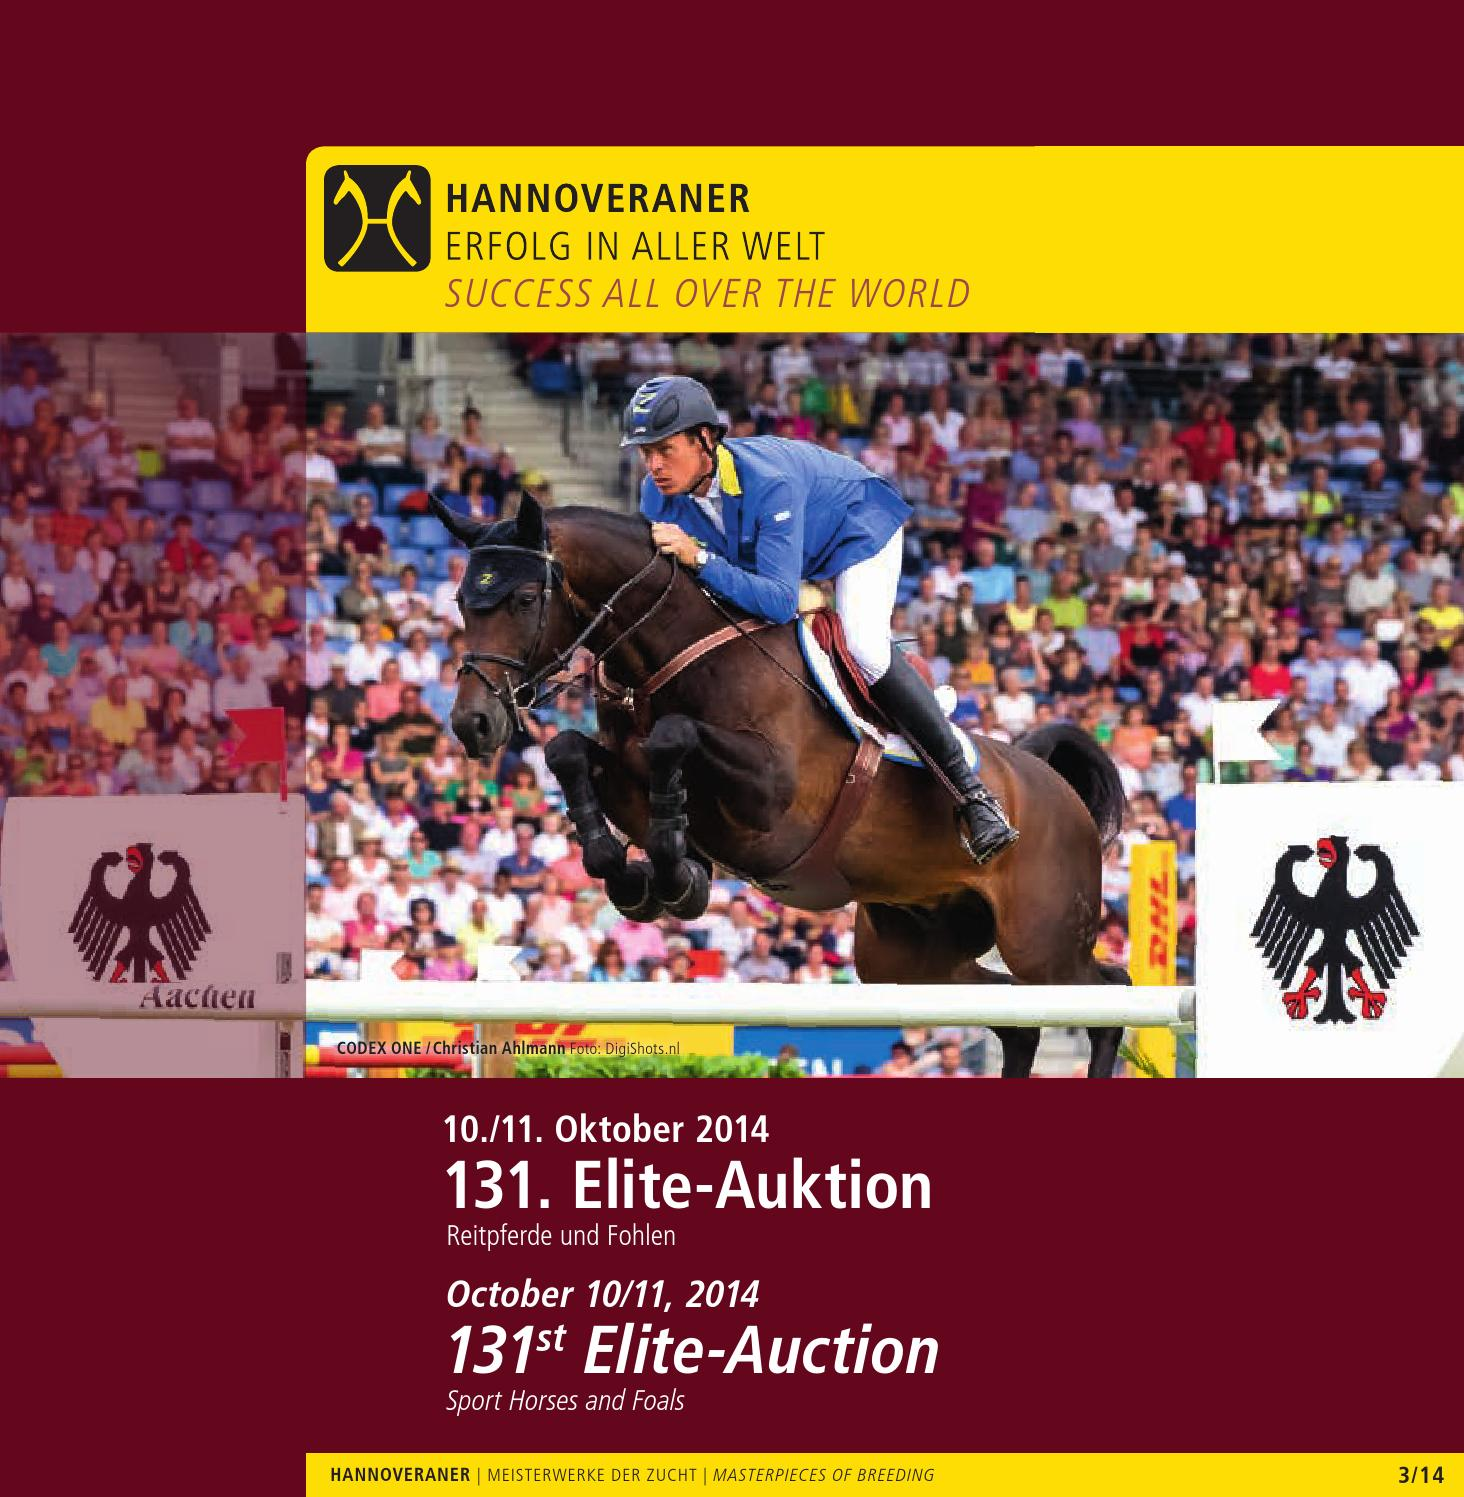 131. Elite-Auktion Reitpferde und Fohlen - 131st Elite-Auction of ...